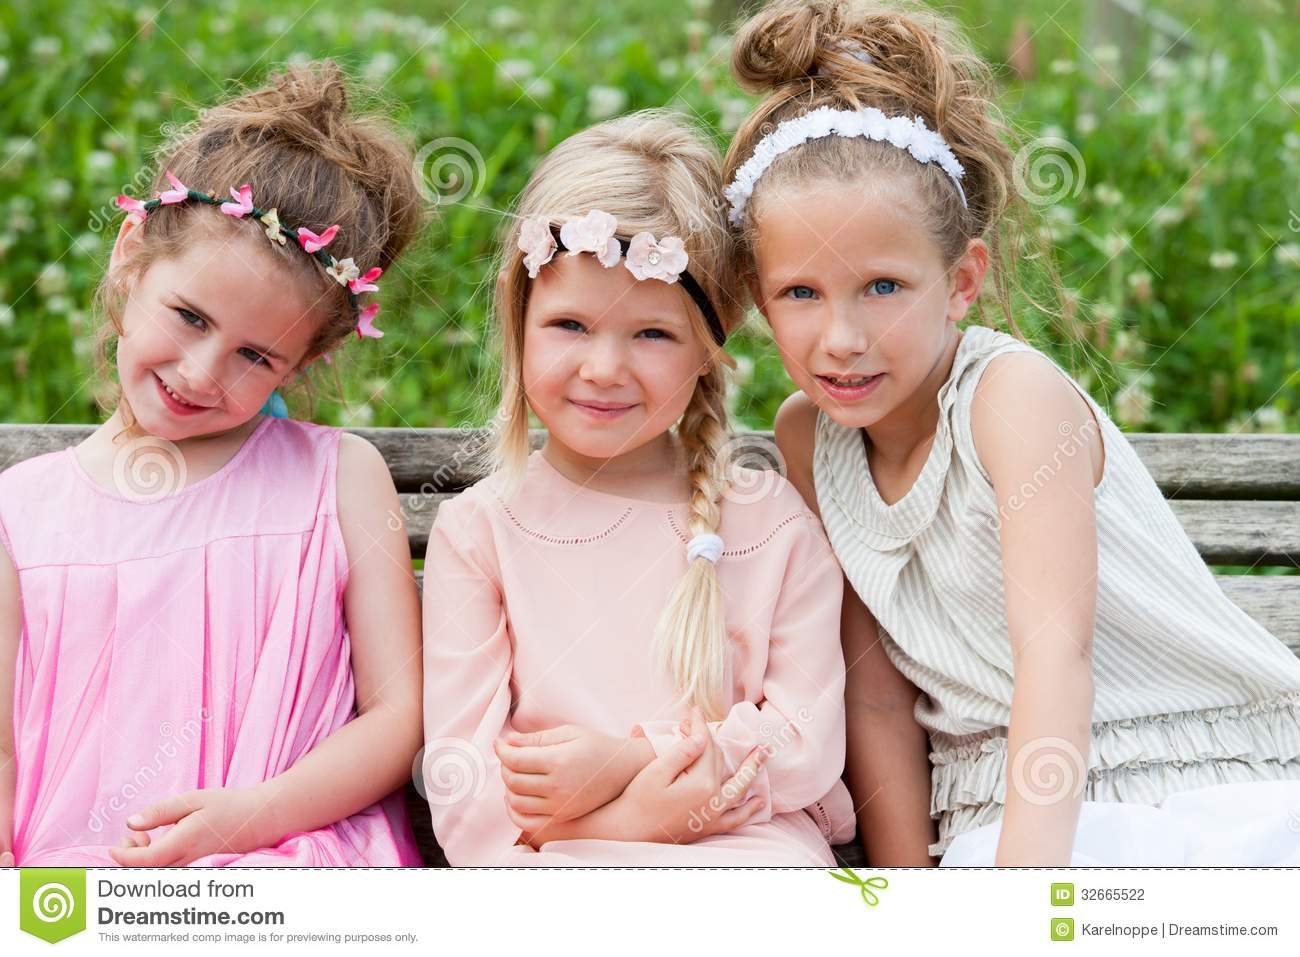 Three Cute Girl Friends Sitting Together On Wooden Bench